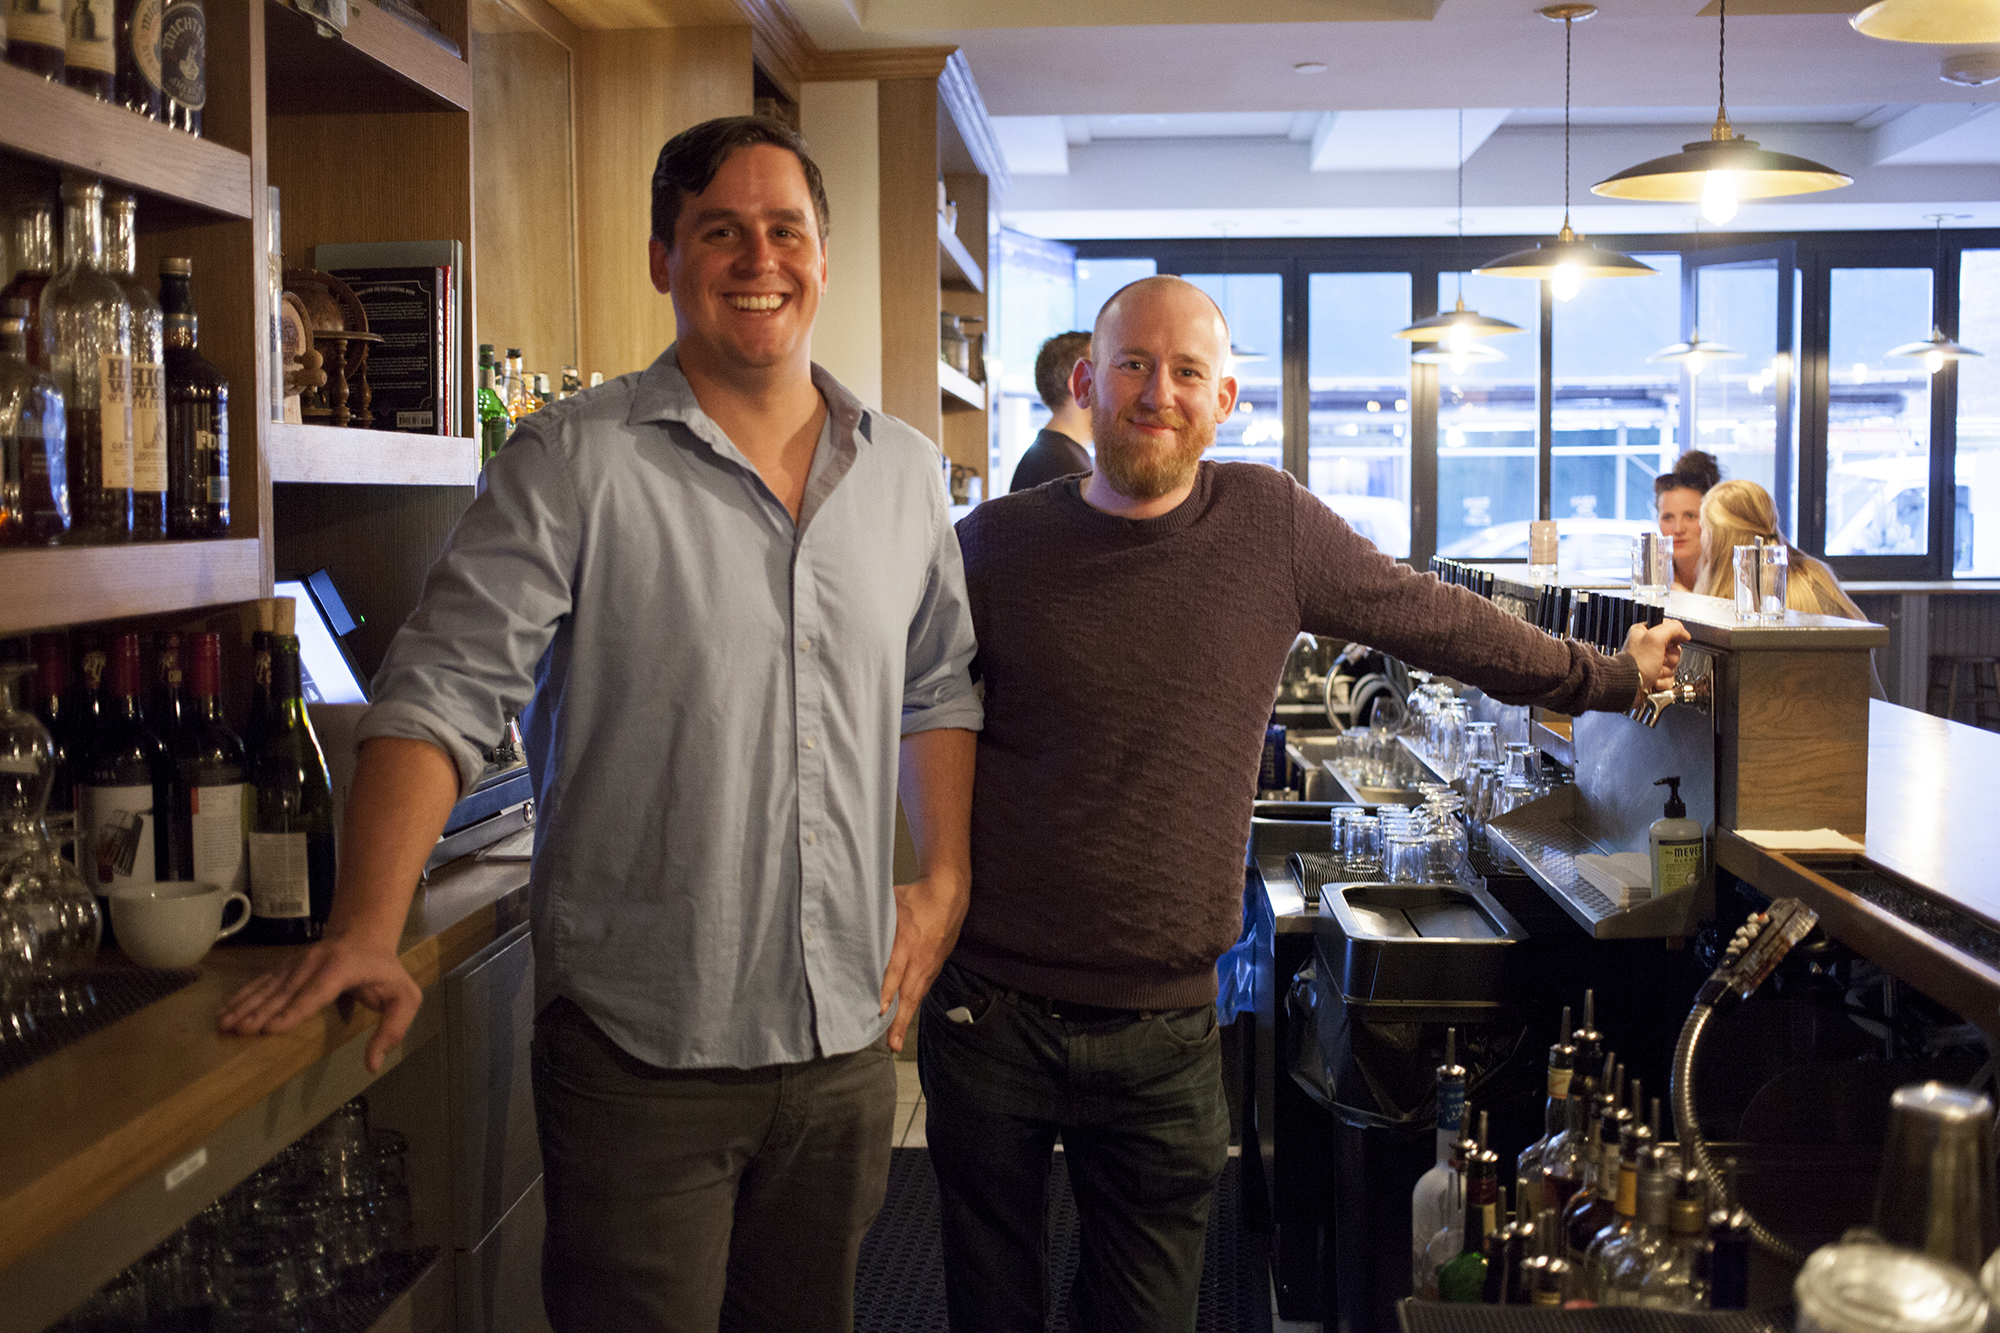 haymaker bar and kitchen midtown manhattans new beer haven haymaker puts chelsea on the map of craft curated taps - Haymaker Bar And Kitchen